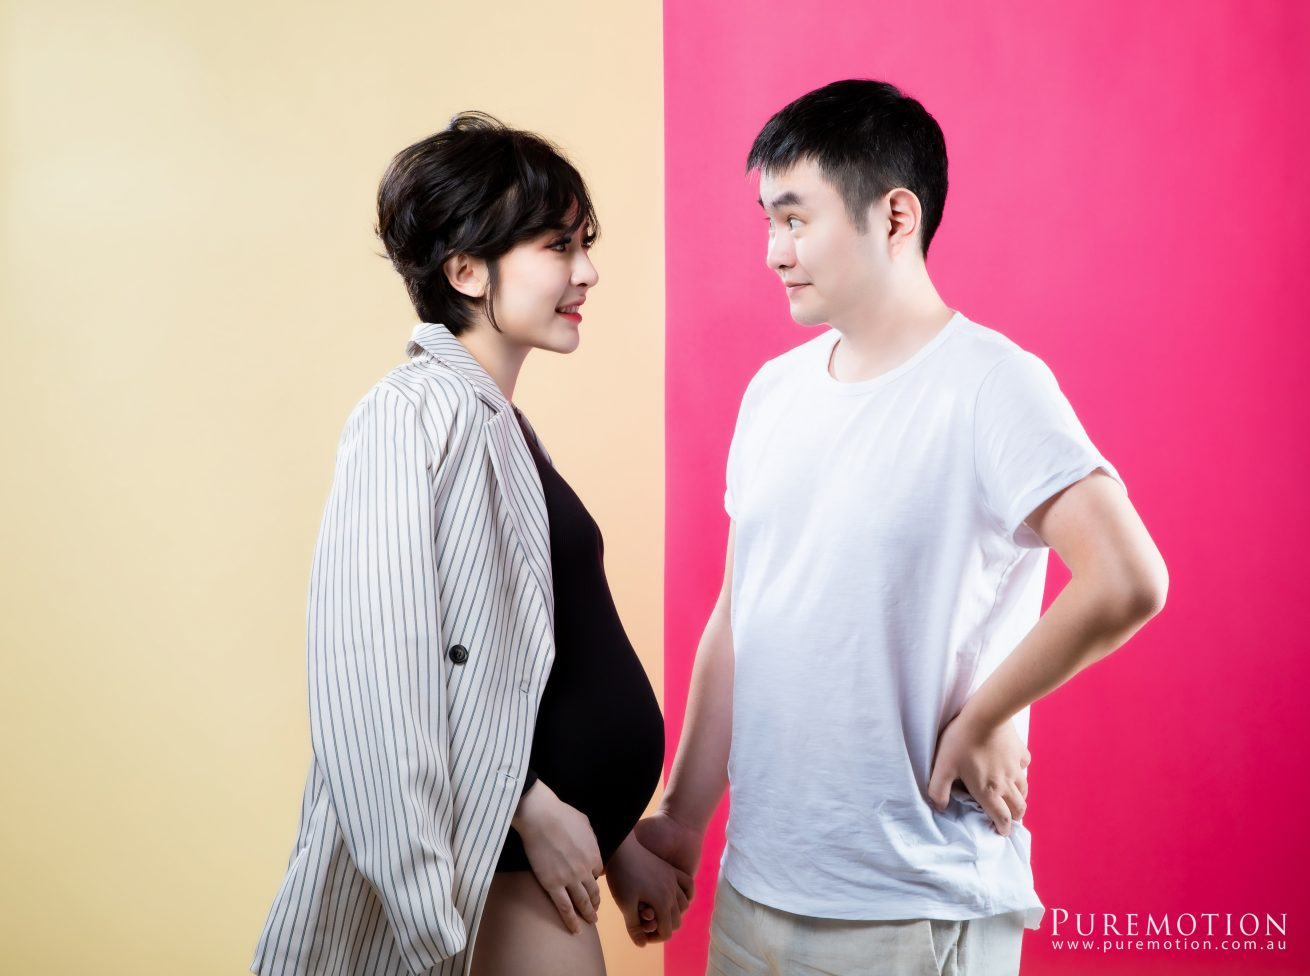 191206 Puremotion Maternity Portrait Photography Alex Huang Brisbane AnanMaternity-0004